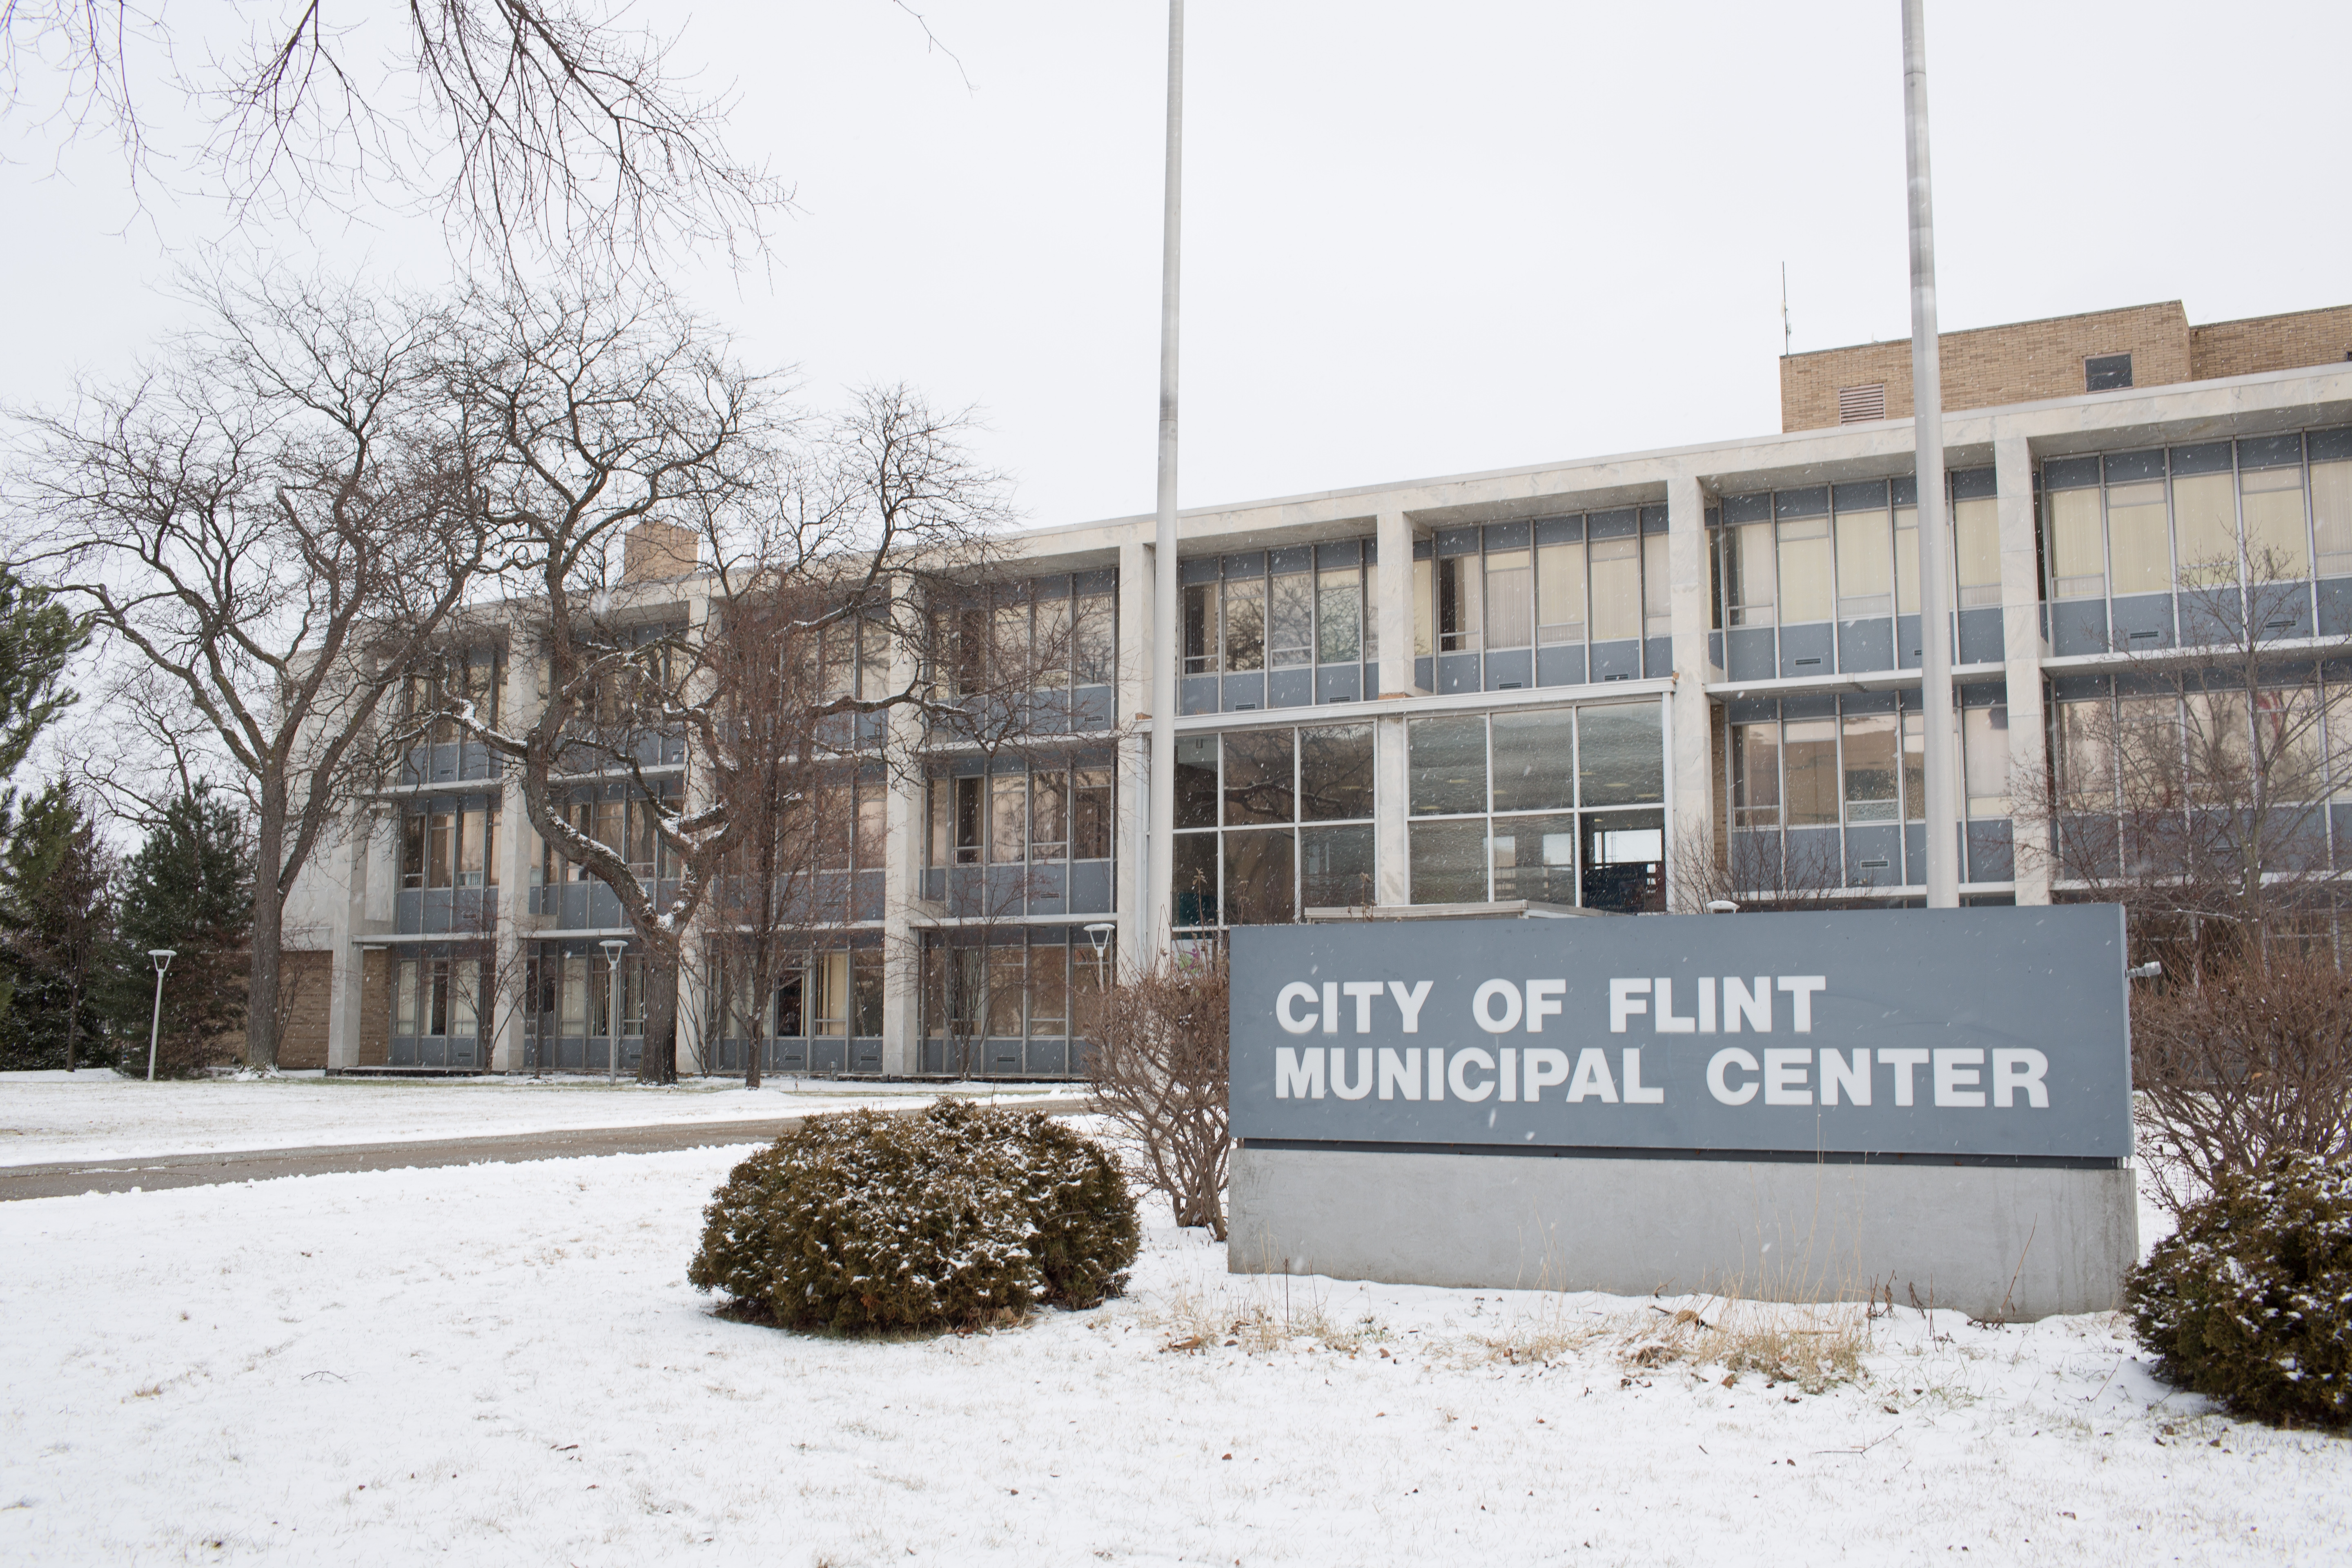 The exterior of the City of Flint Municipal Center before a press conference by Michigan Gov. Rick Snyder regarding the Flint water crisis on Wednesday in Flint, Mich.